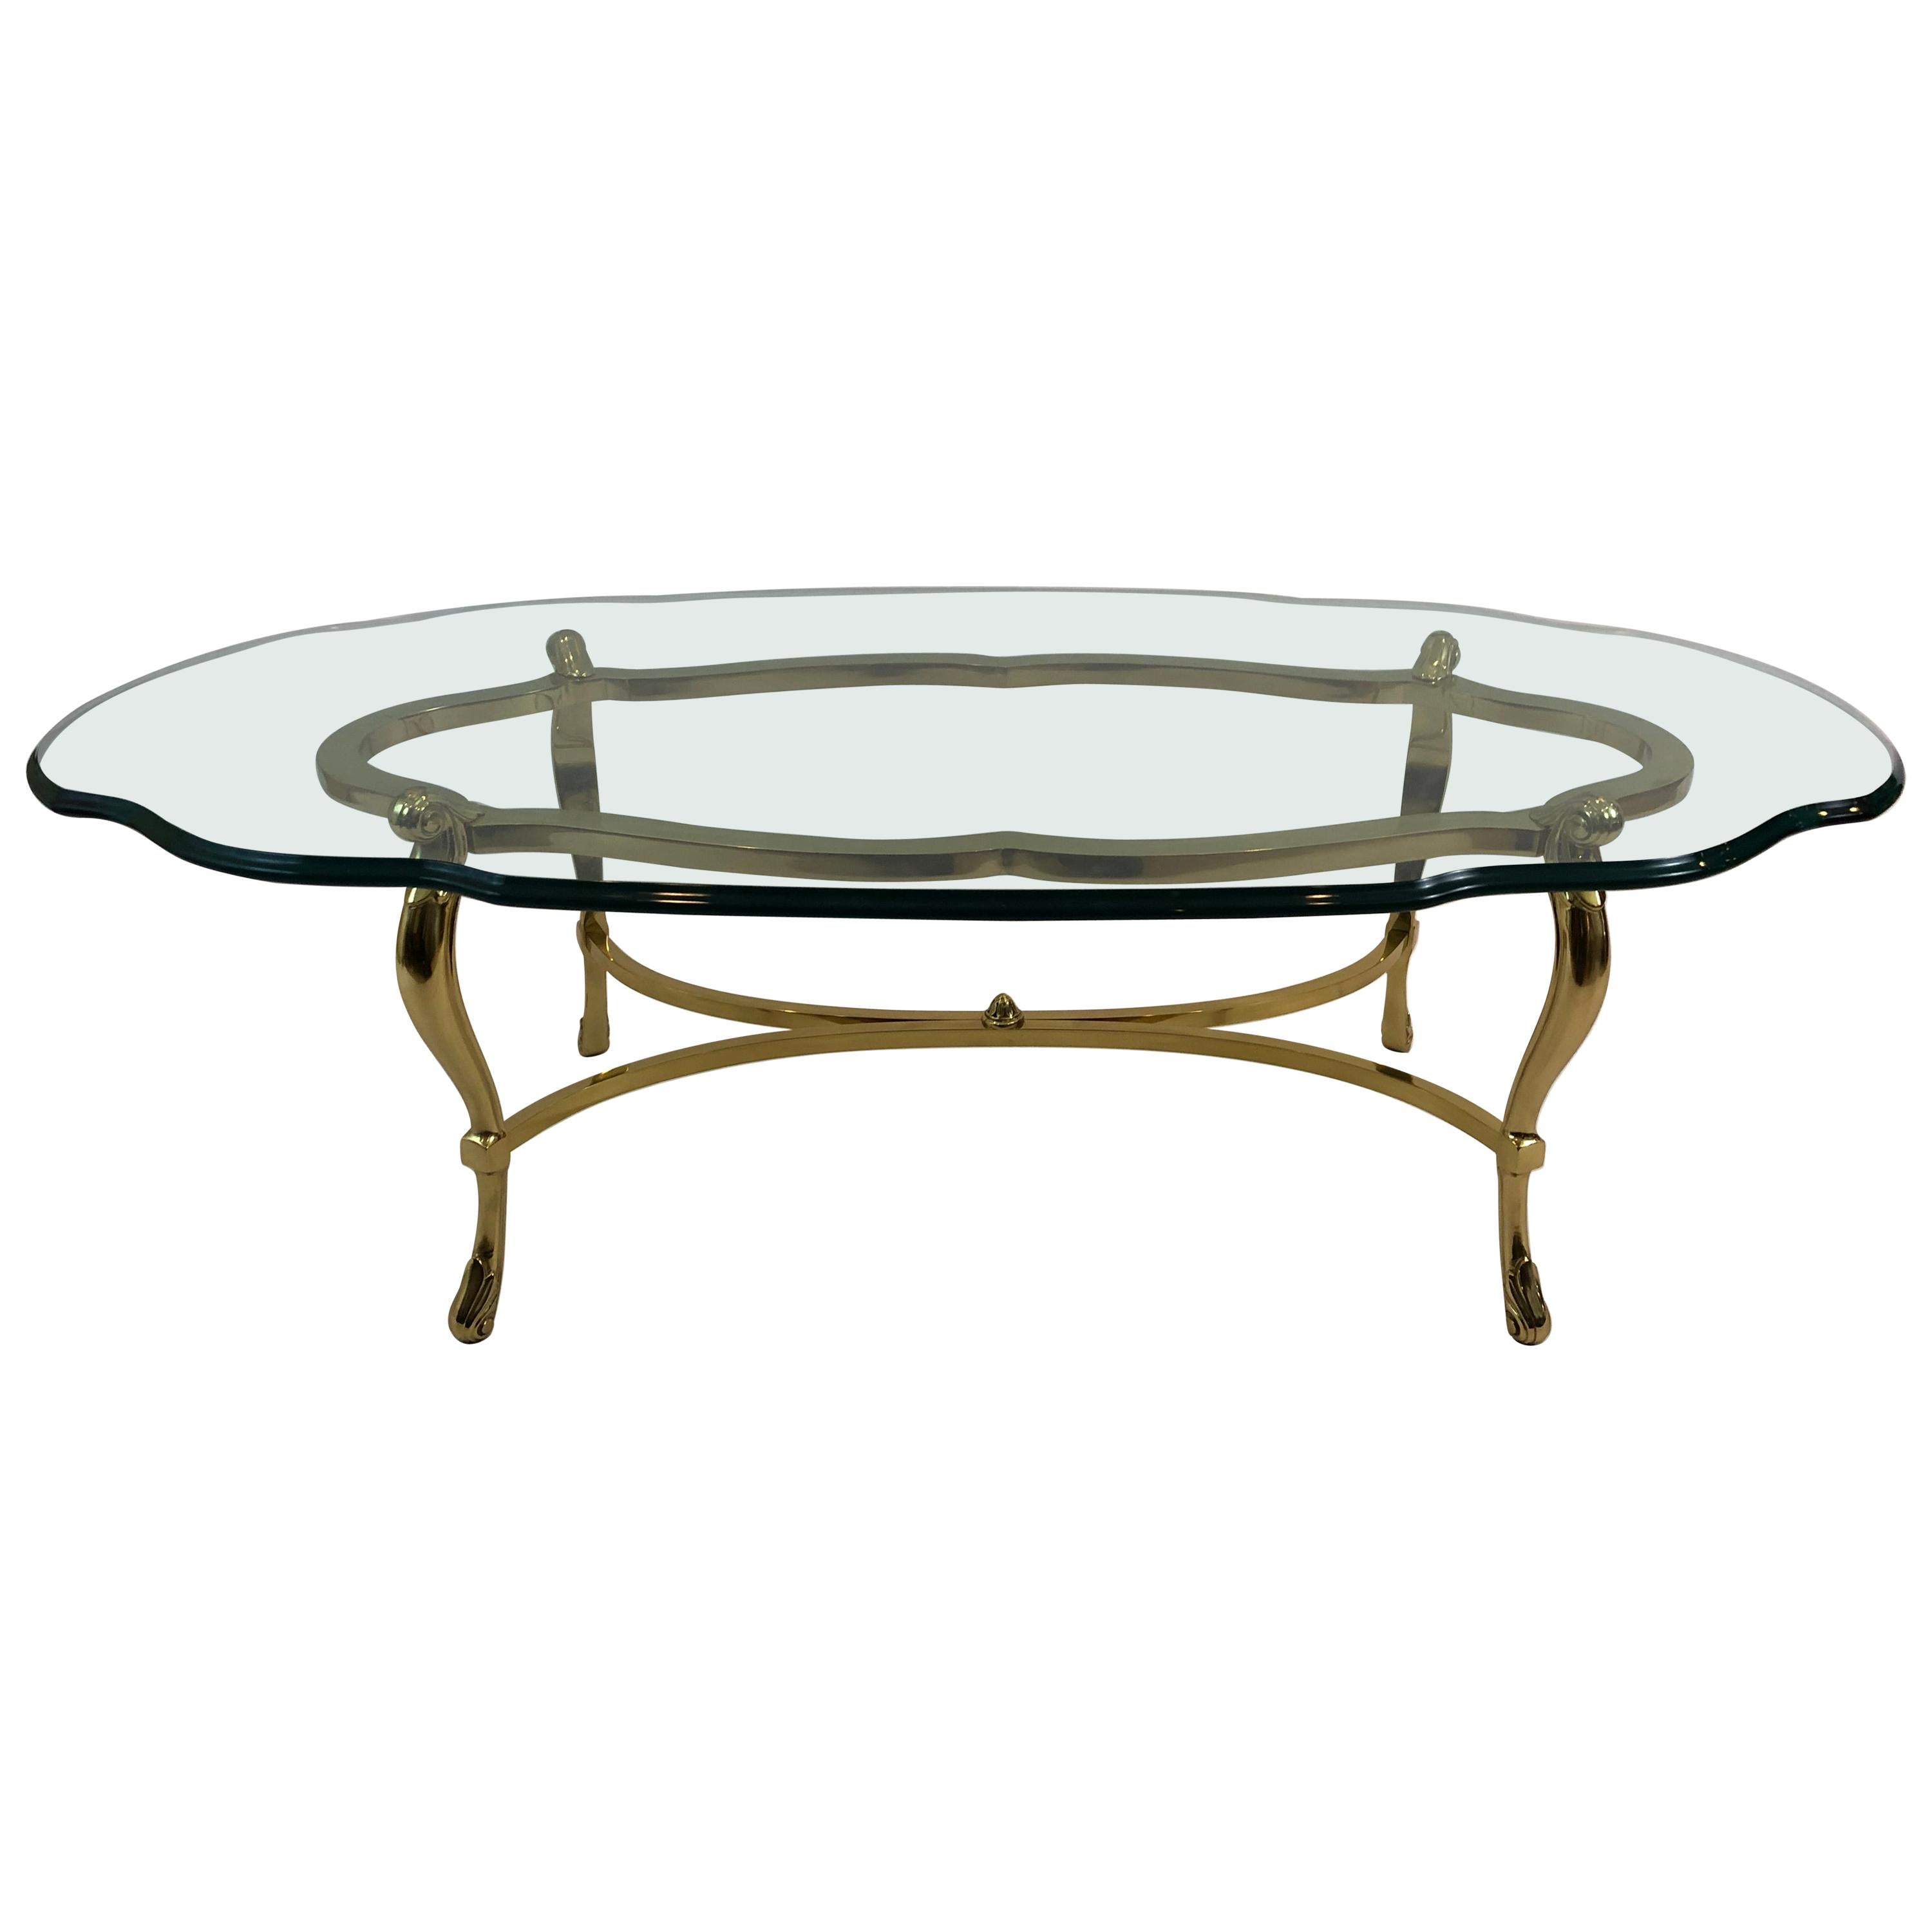 Super Glam LaBarge Brass & Glass Oval Coffee Table